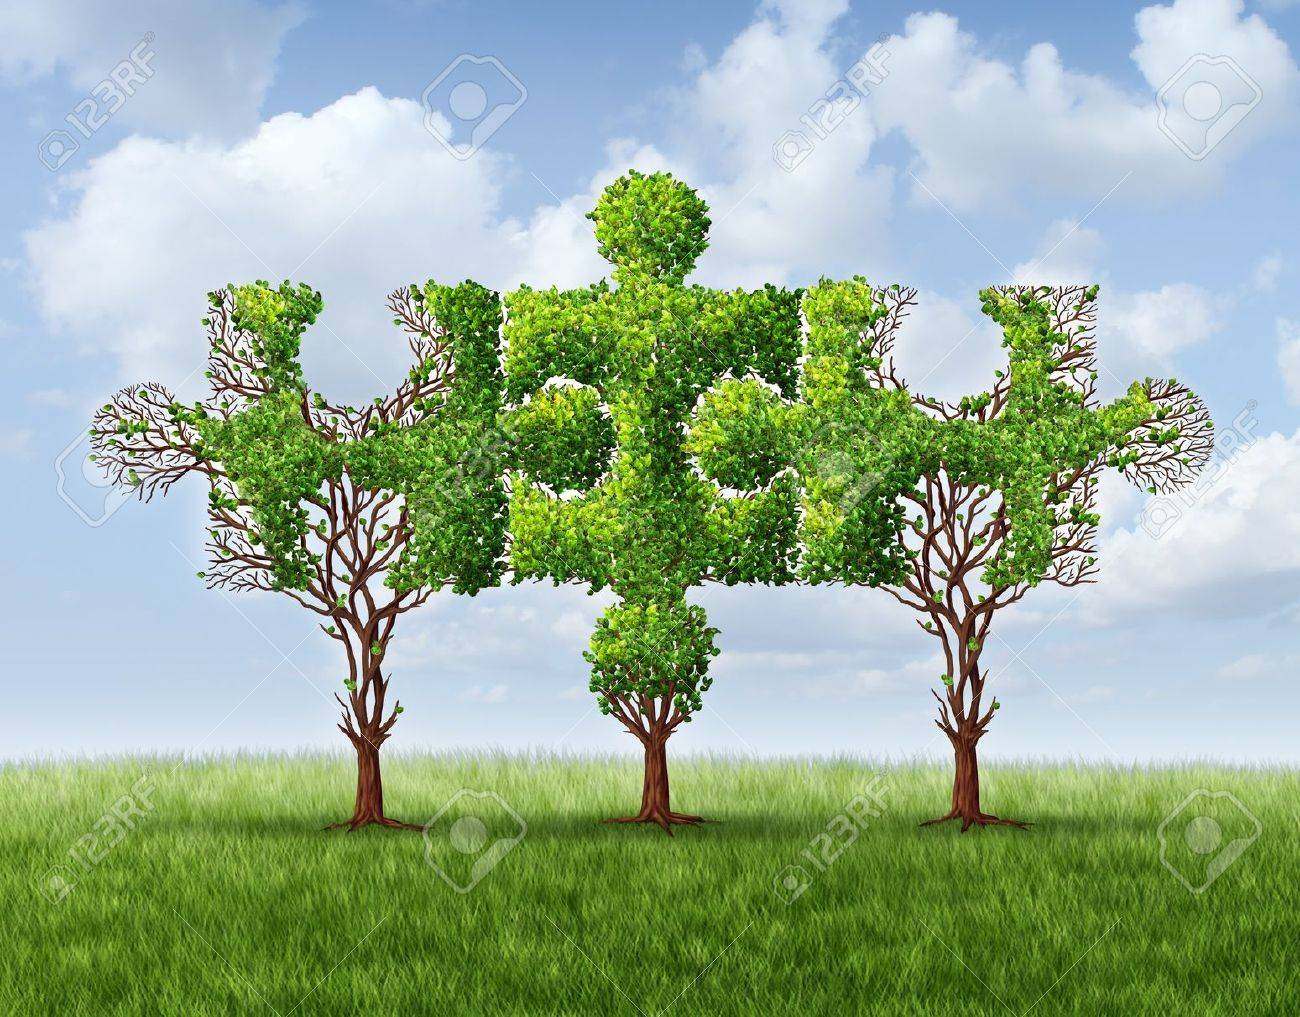 Growing network connection with a group of three trees in the shape of jigsaw puzzle pieces united and meeting together to form a strong stable financial team and business partnership based on trust Stock Photo - 17811644